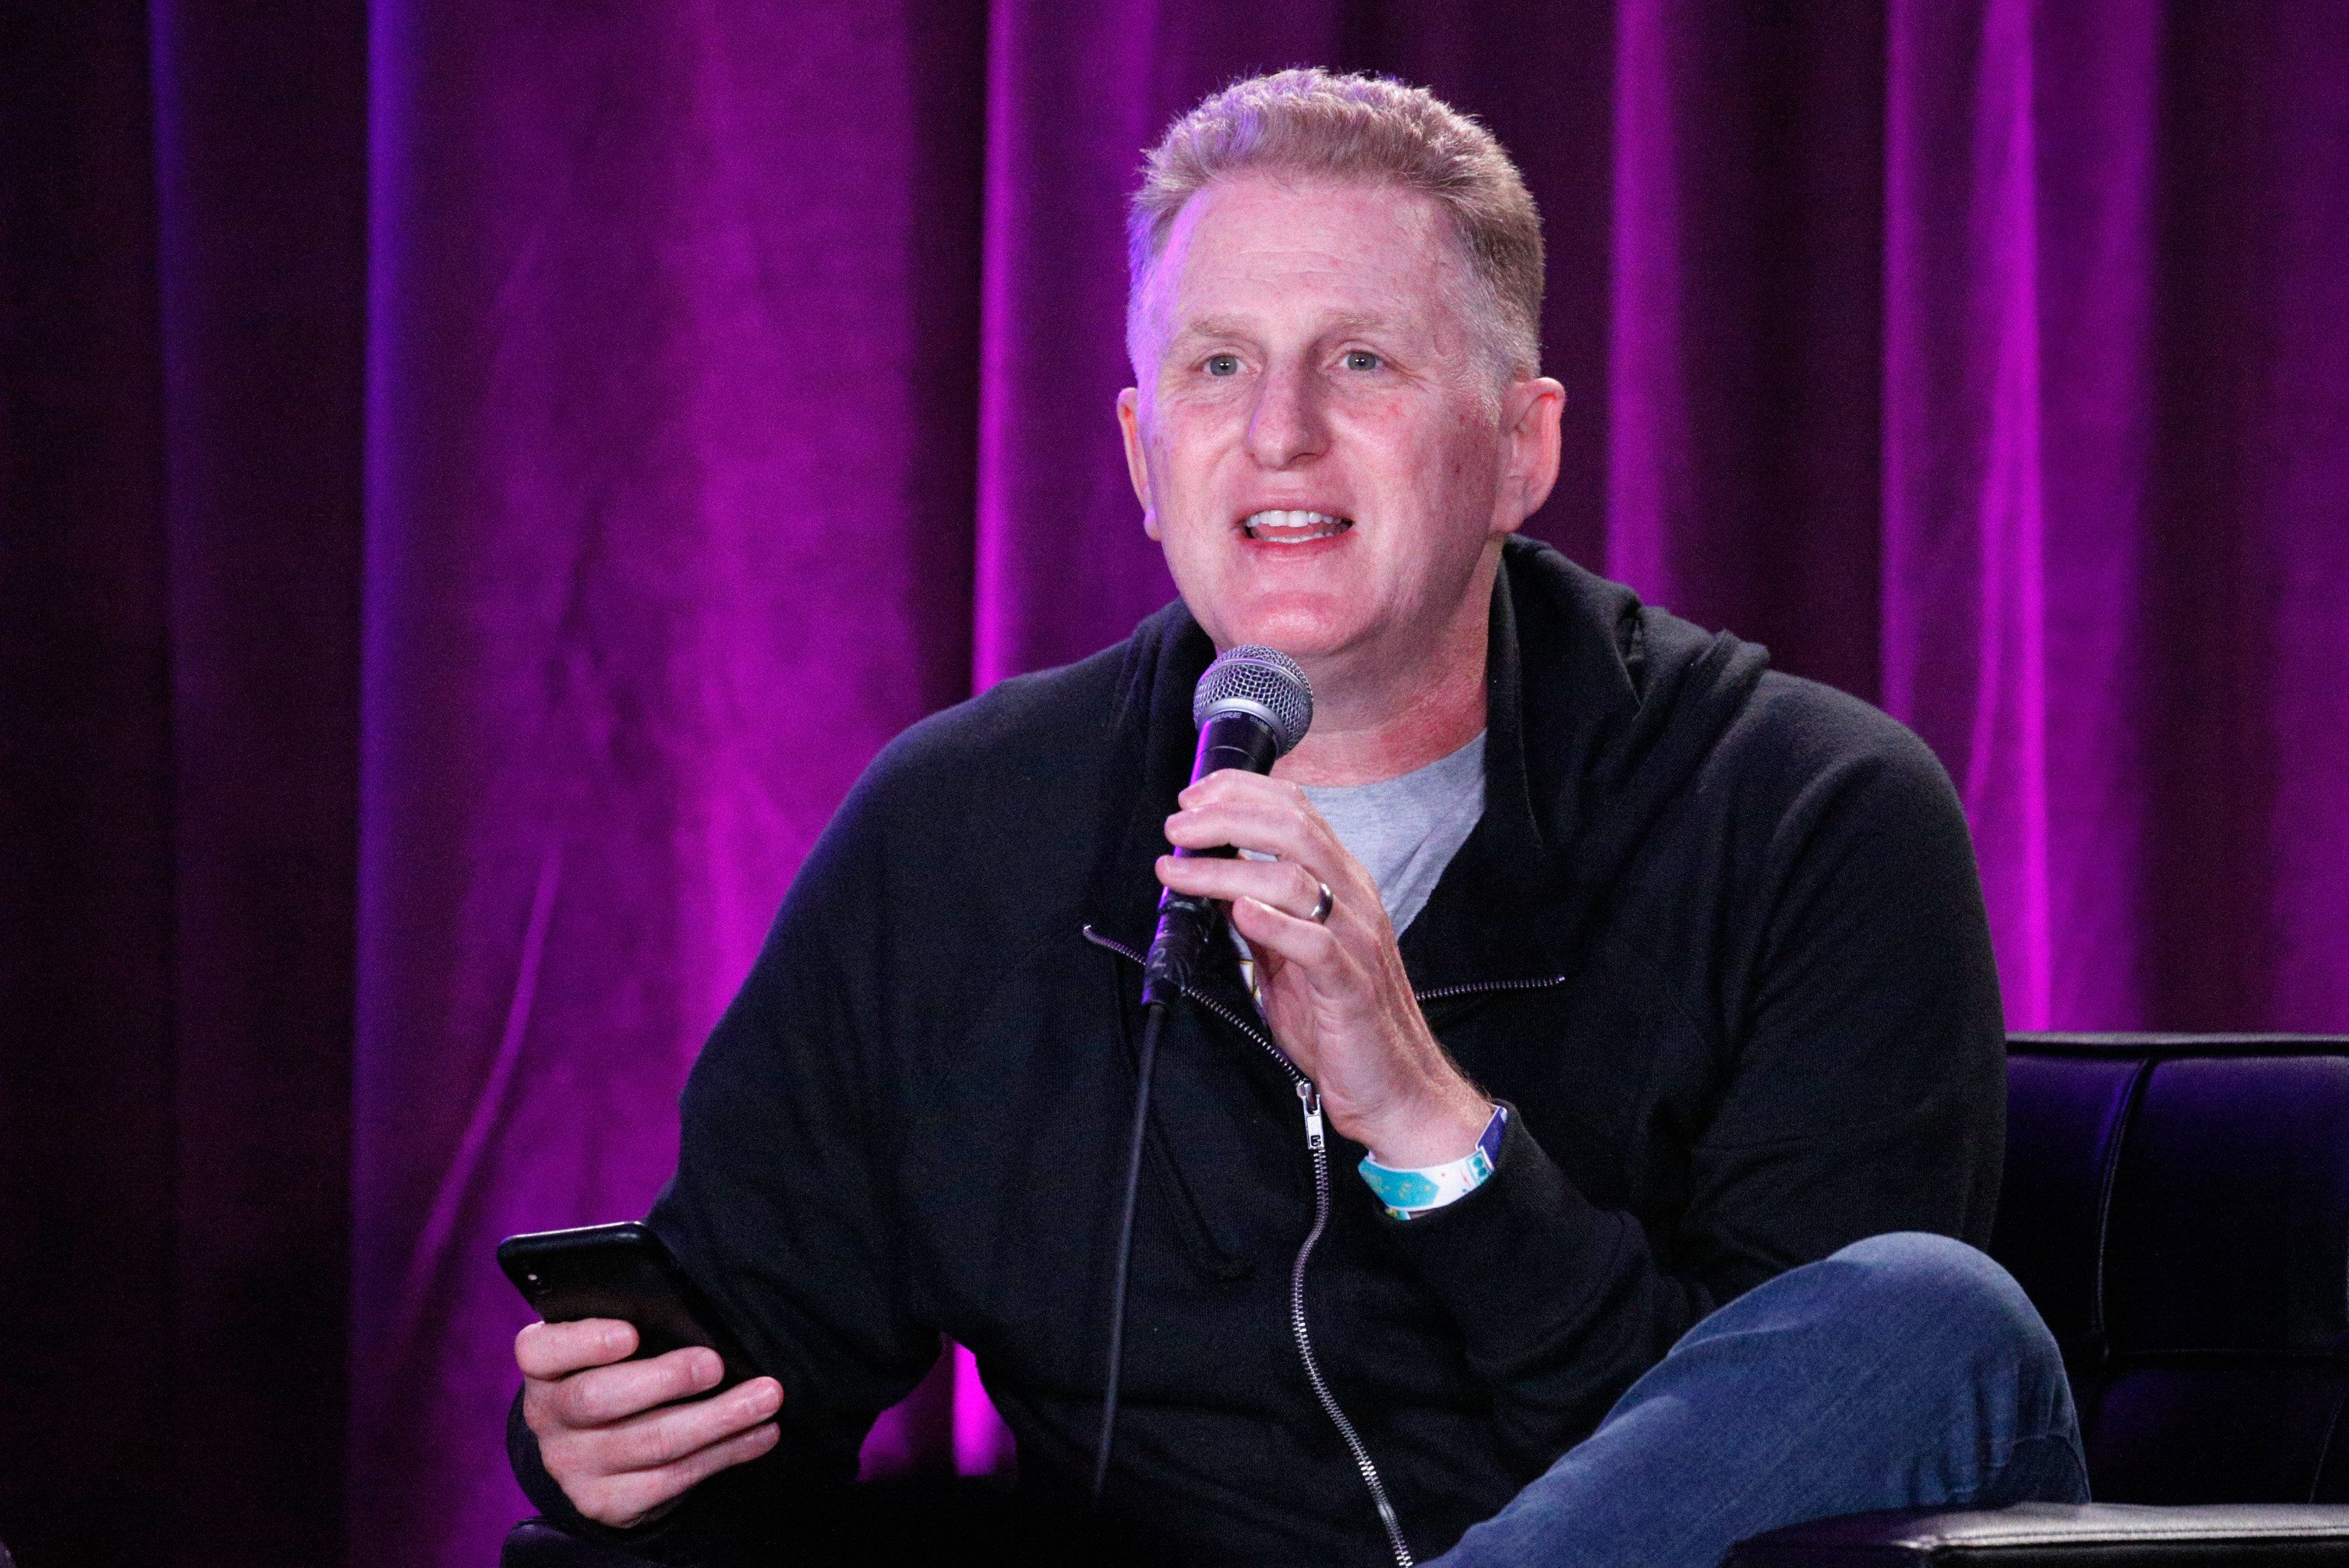 SAN FRANCISCO, CA - JUNE 03:  Michael Rapaport performs onstage during 'I Am Rapaport: Stereo Podcast' in the Room 415 Comedy Club during Clusterfest at Civic Center Plaza and The Bill Graham Civic Auditorium on June 3, 2018 in San Francisco, California.  (Photo by FilmMagic/FilmMagic)